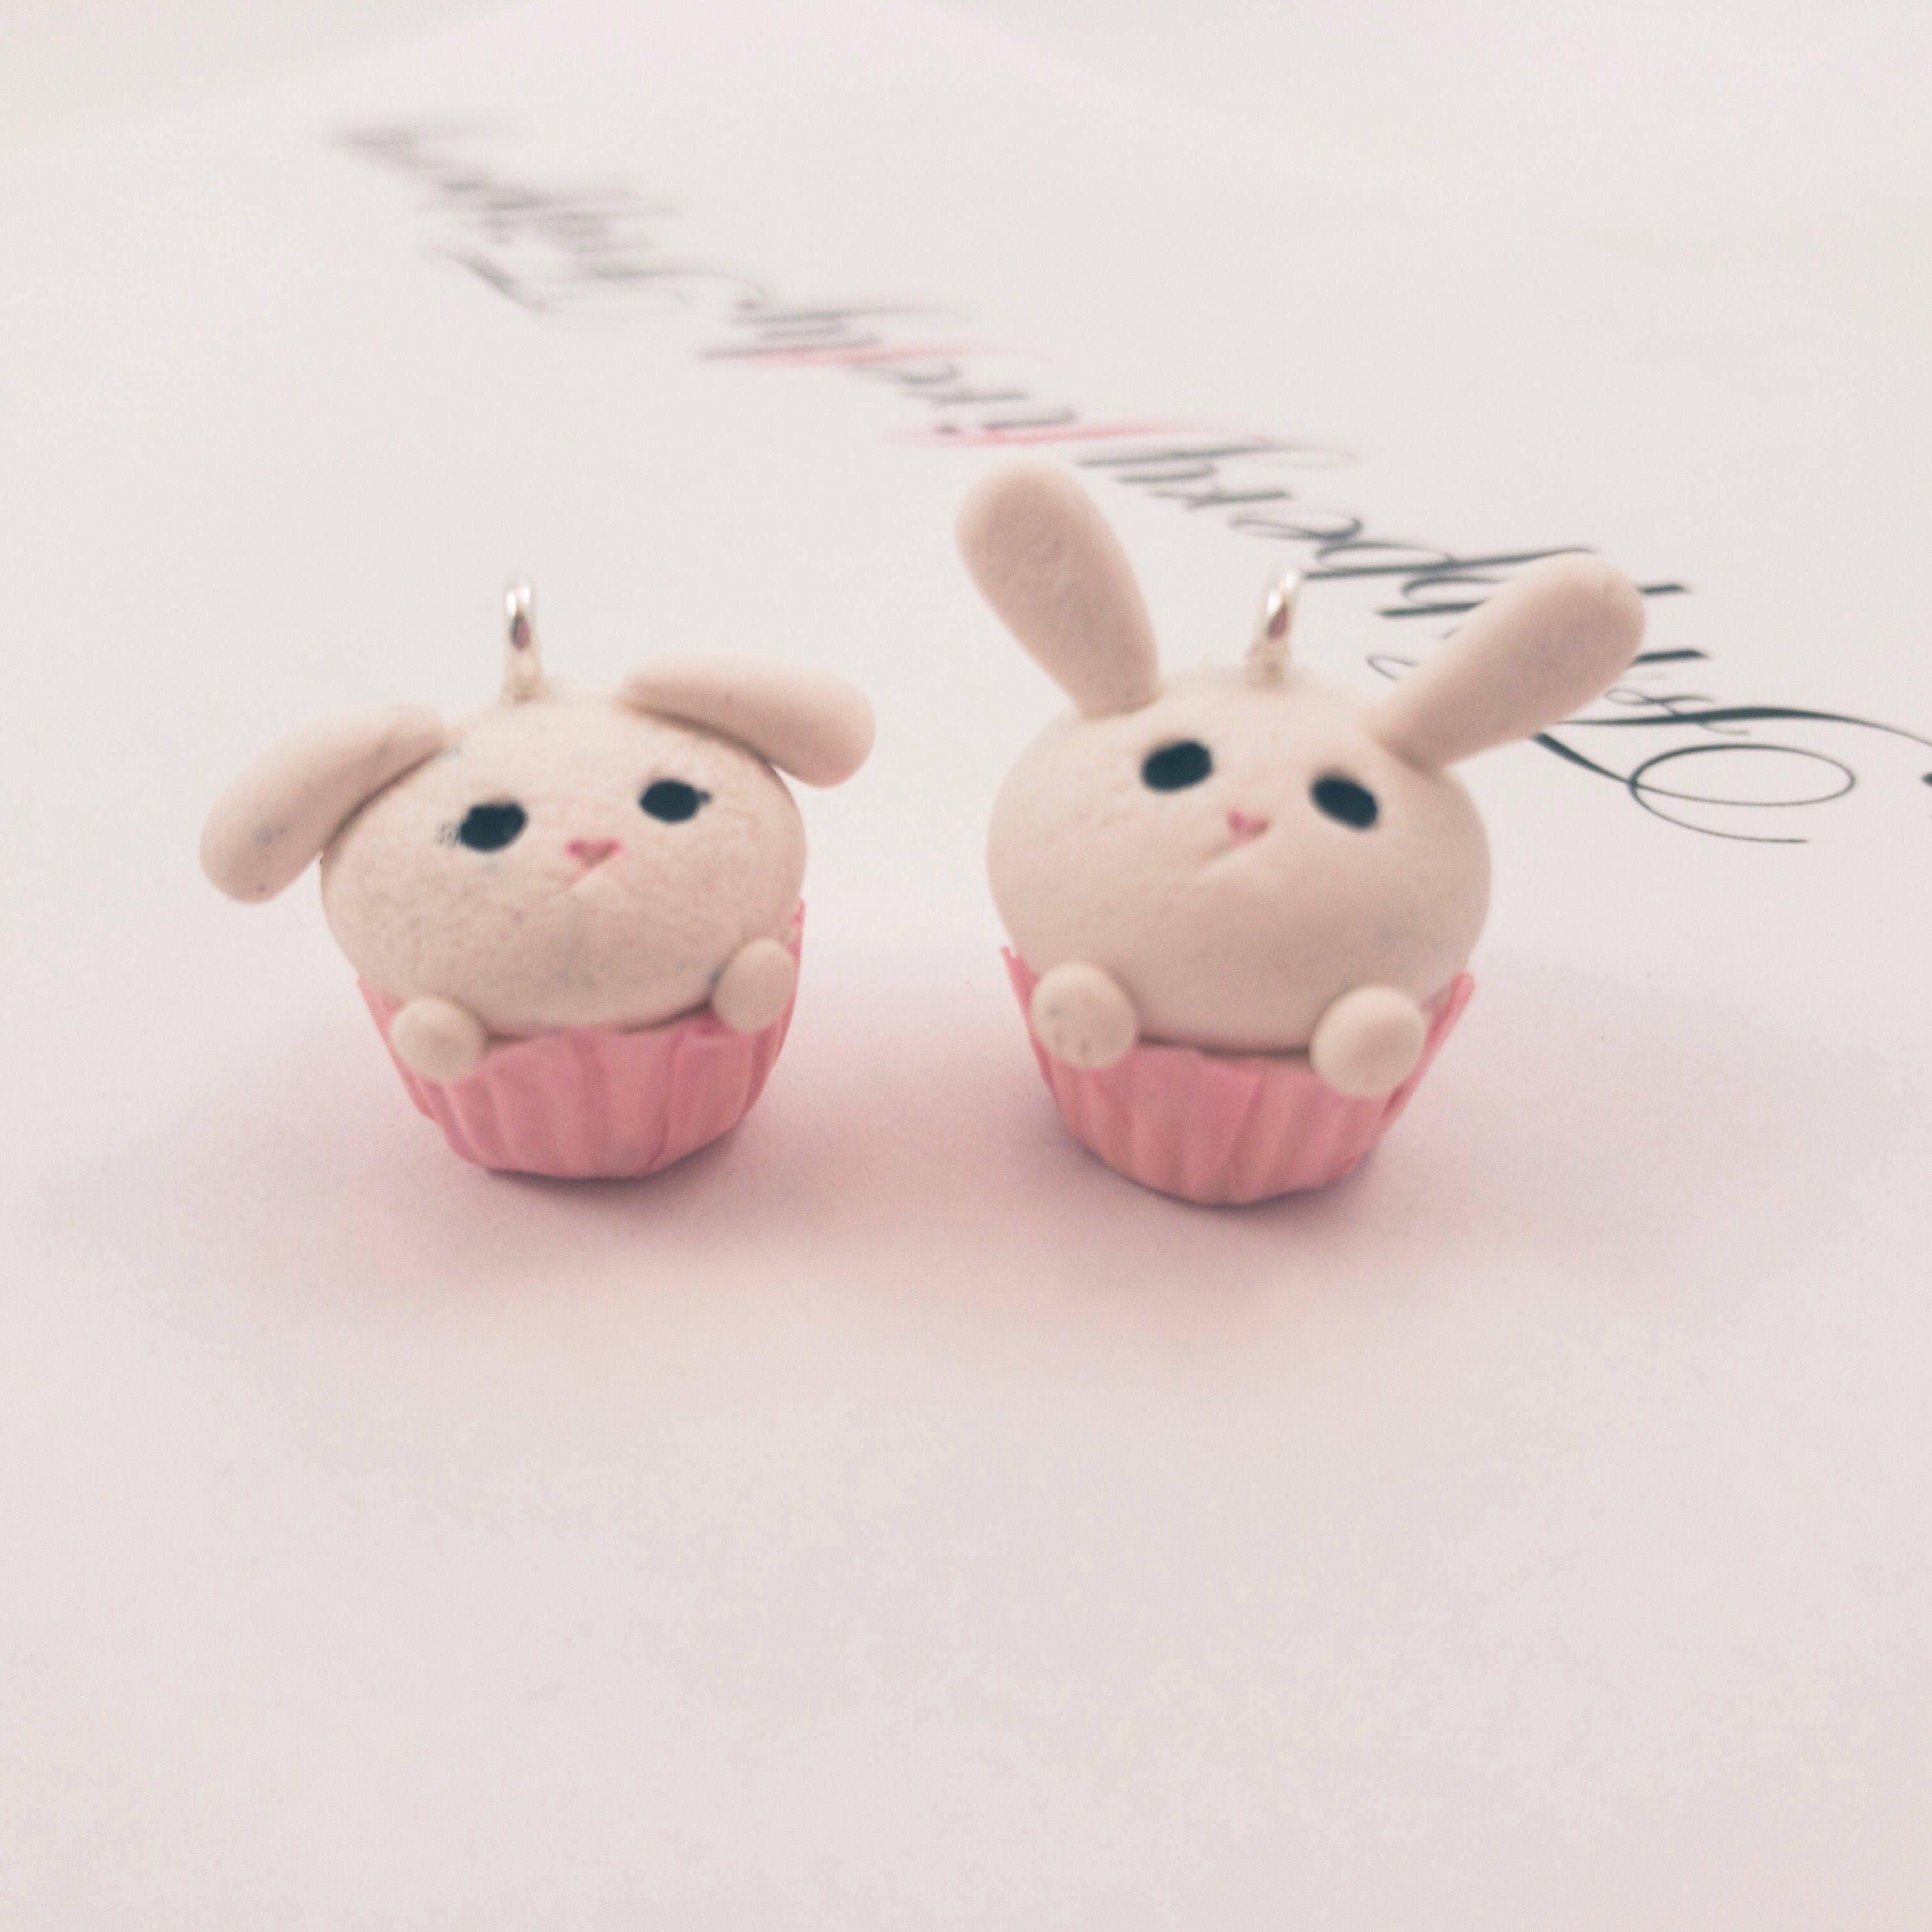 fireflyFrippery bunnybake charms front view